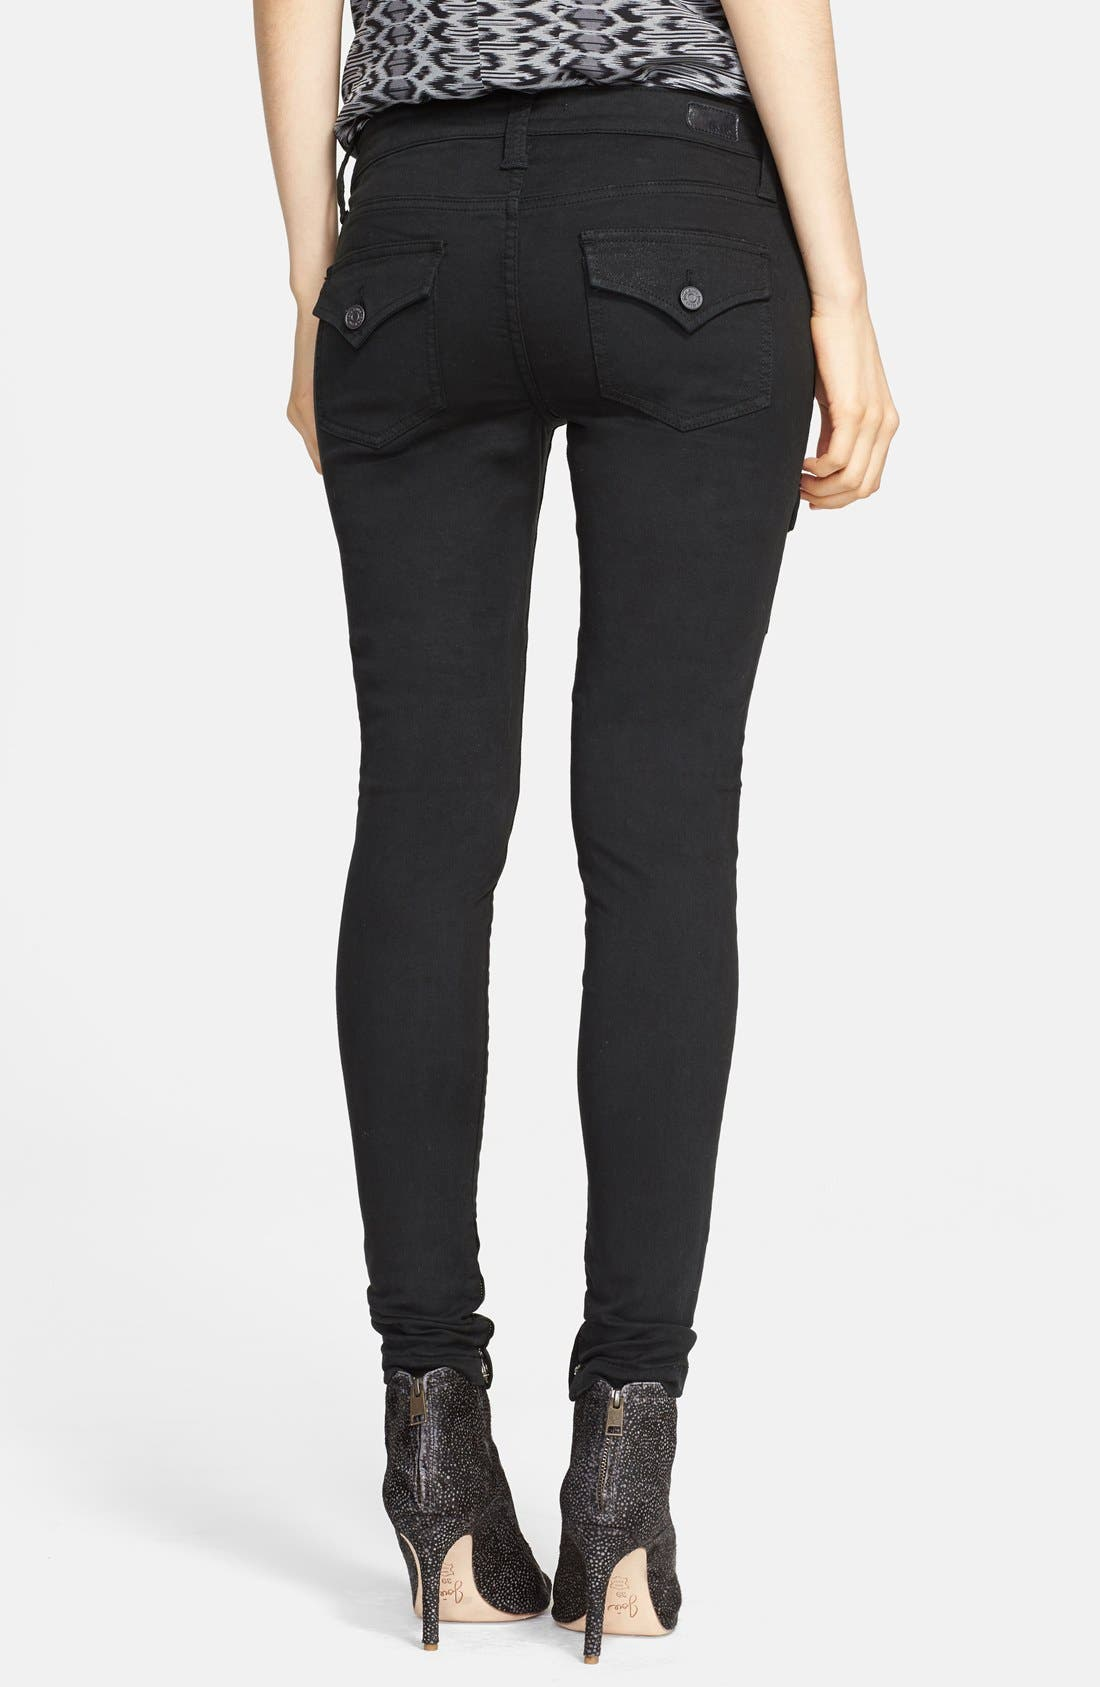 Alternate Image 2  - Joie 'So Real' Cargo Stretch Skinny Jeans